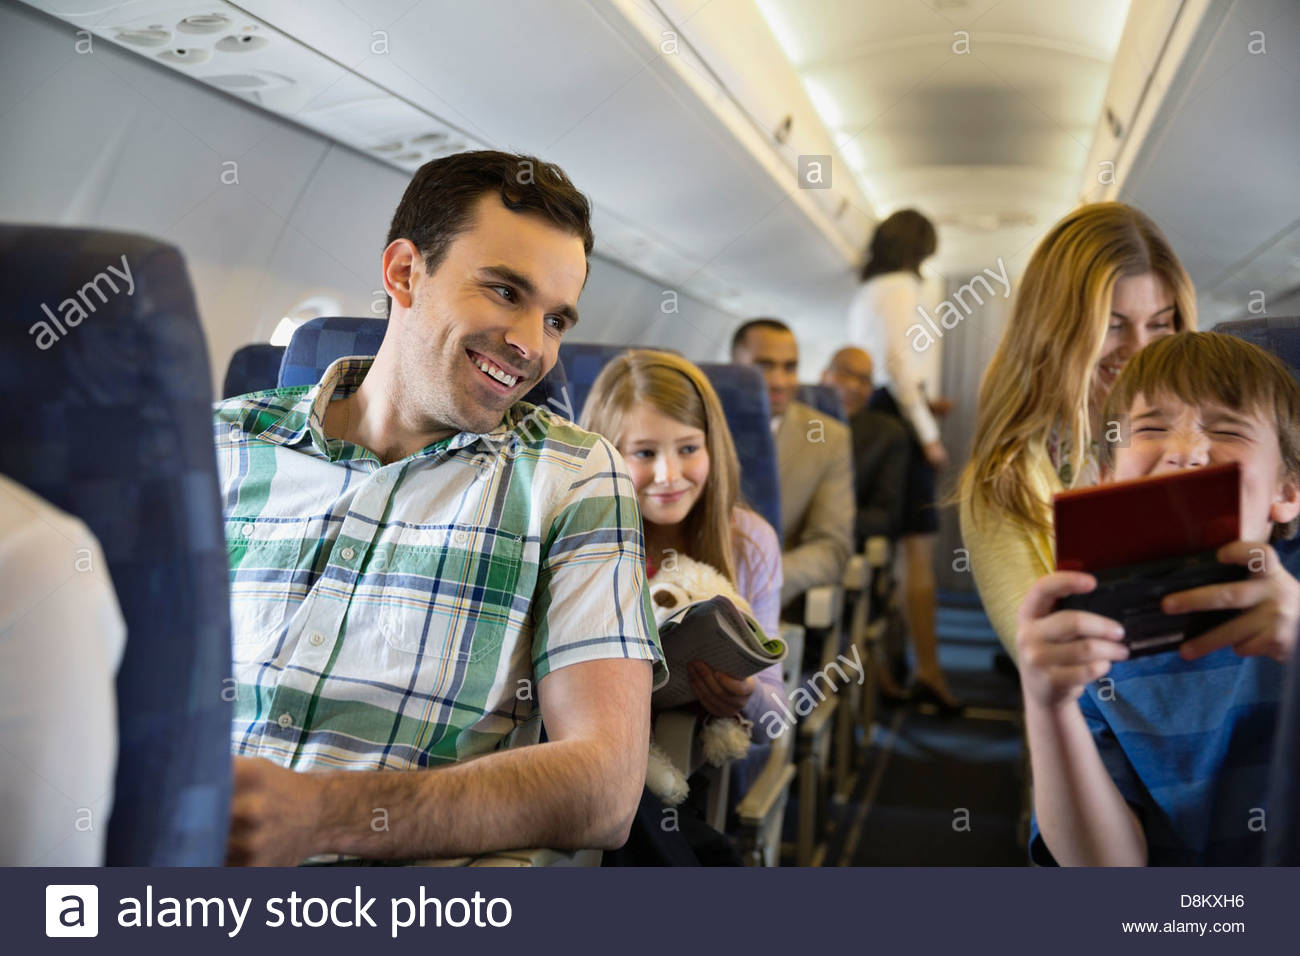 Passengers traveling in airplane - Stock Image